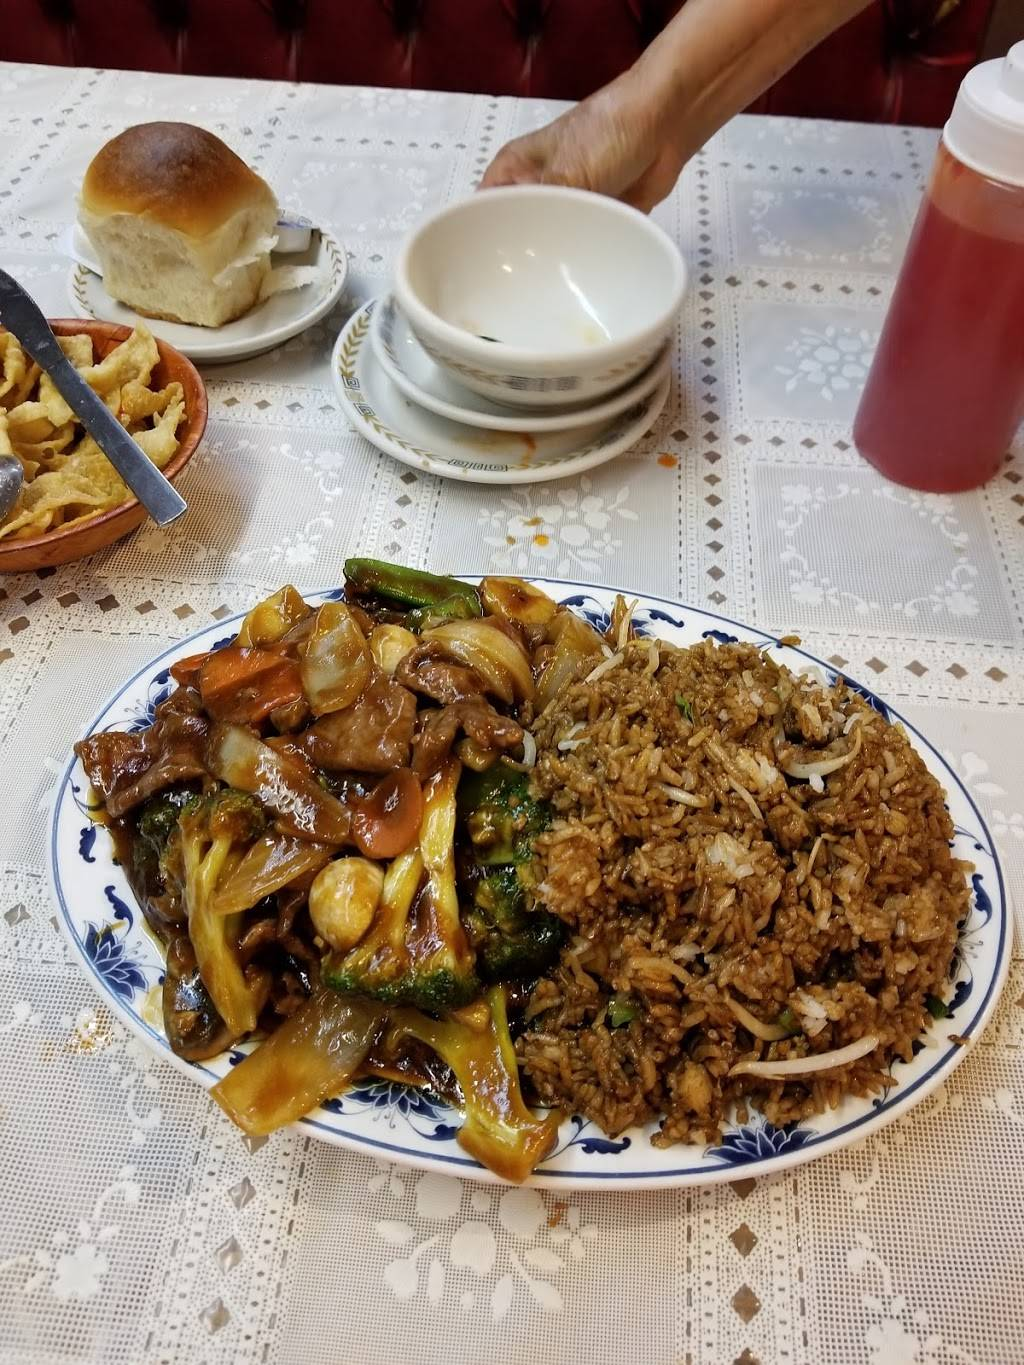 Loung Hing Restaurant | restaurant | 22339 Ecorse Rd, Taylor, MI 48180, USA | 3132925970 OR +1 313-292-5970